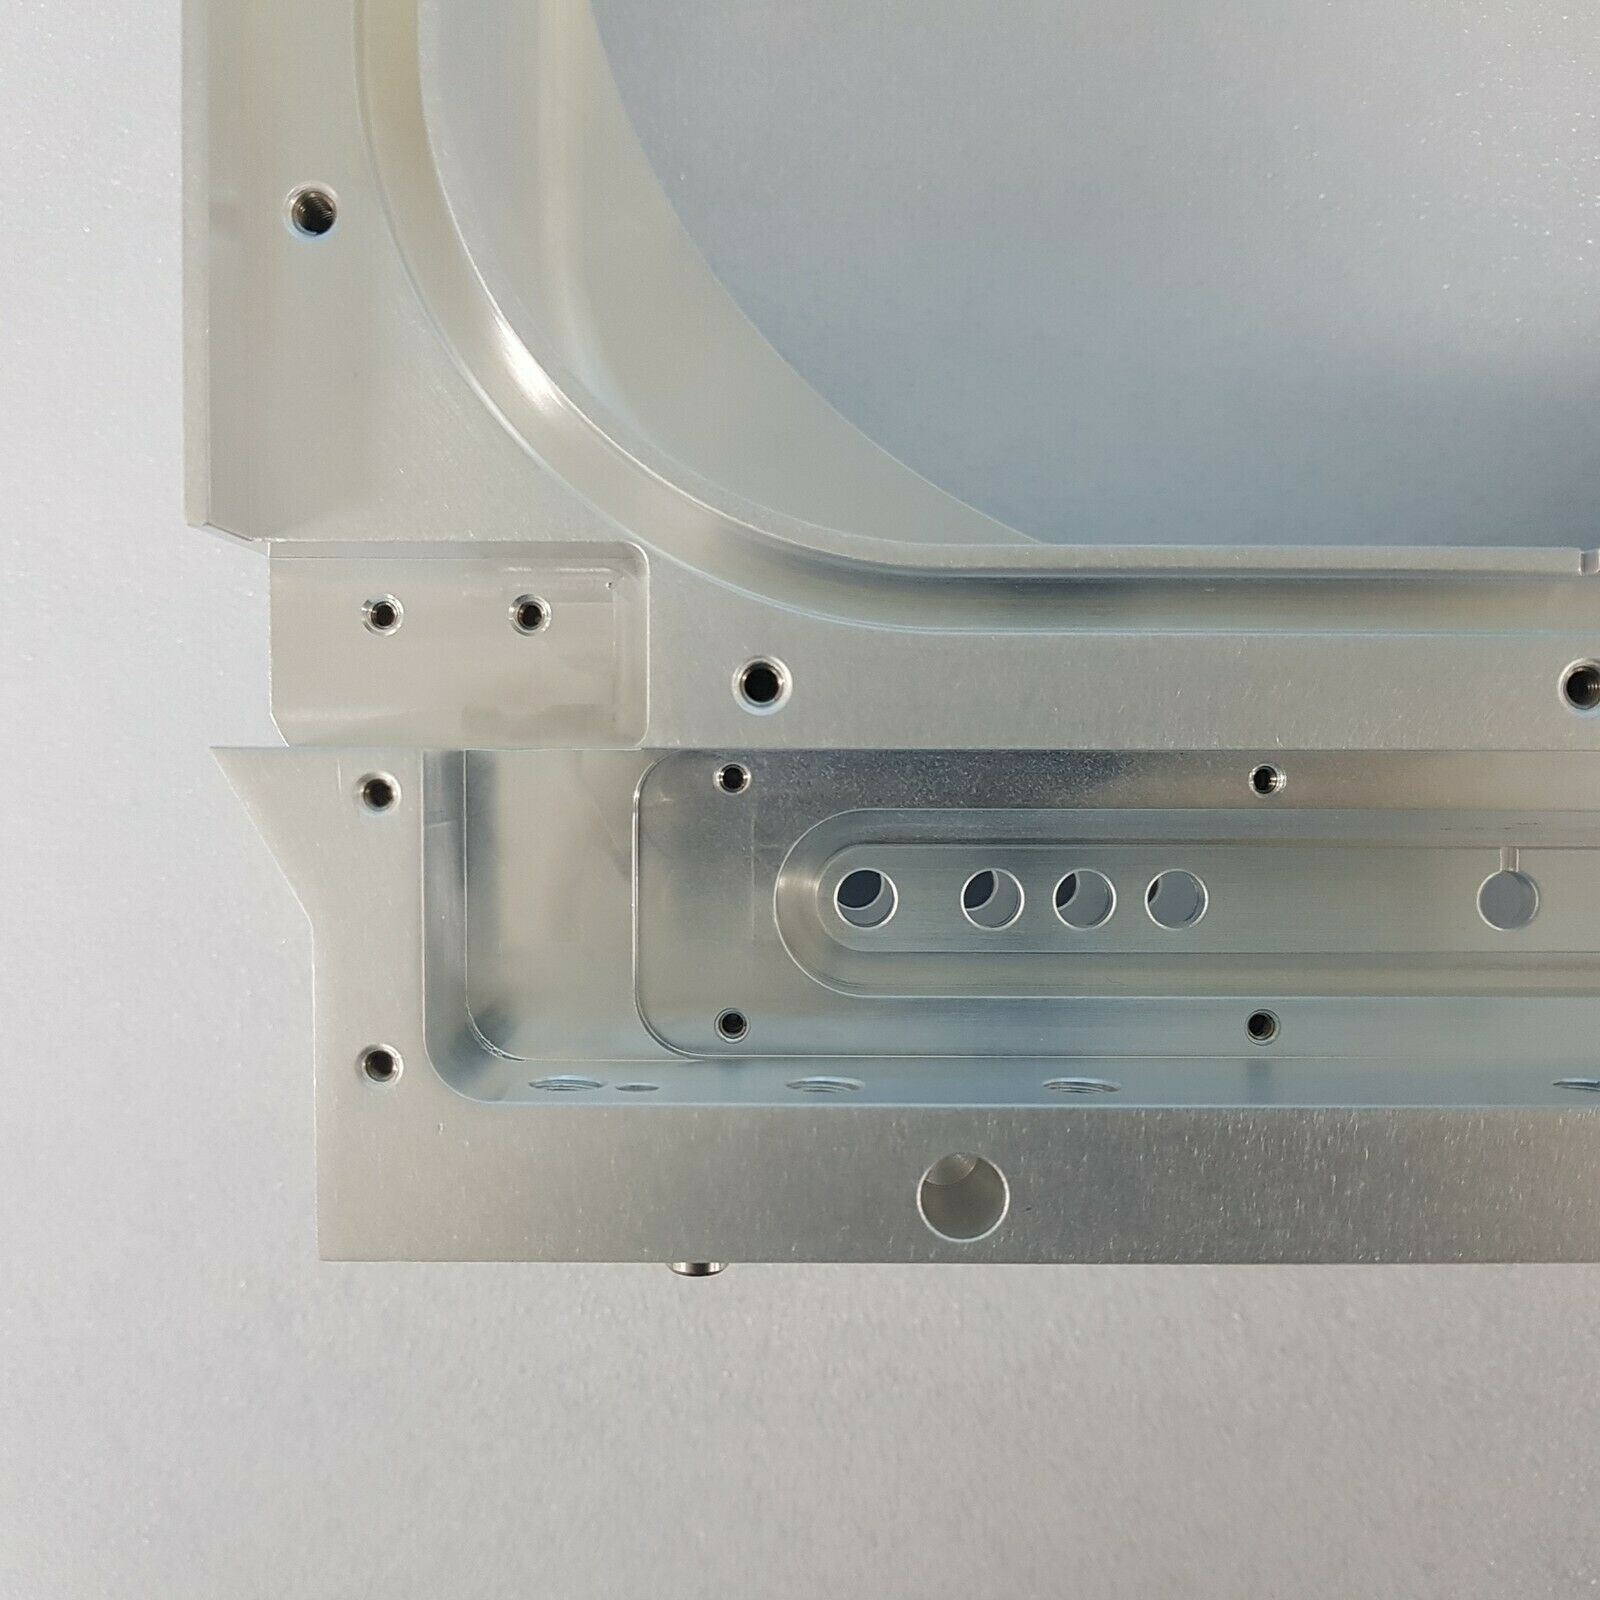 Details about  /347-0301//// AMAT APPLIED 0020-09080 APPLIED MATRIALS COMPONENTS NEW